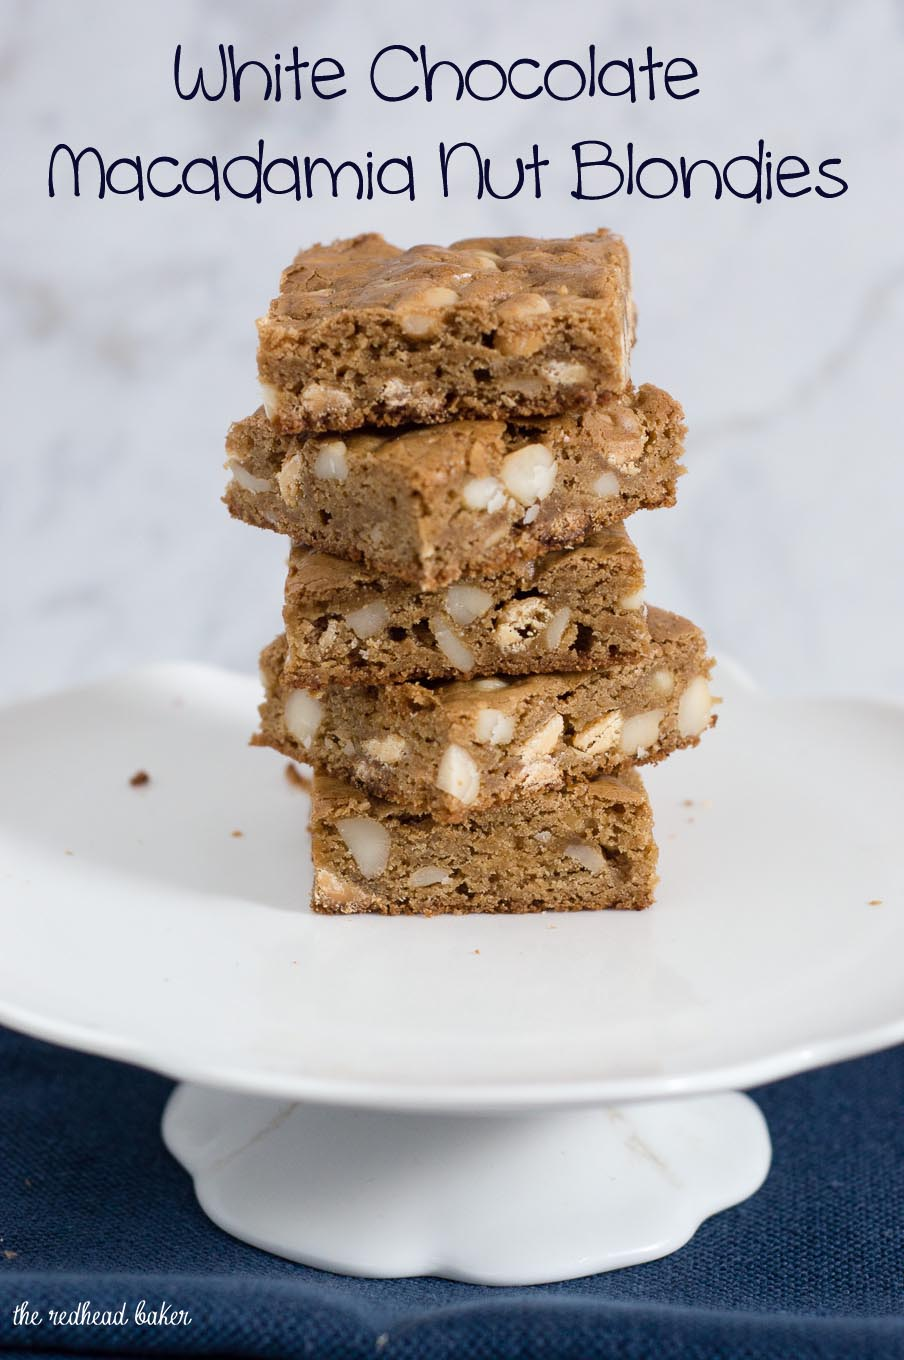 Blondies are sweet bars similar to brownies, but without the cocoa. These blondies are loaded with white chocolate chips and macadamia nuts.